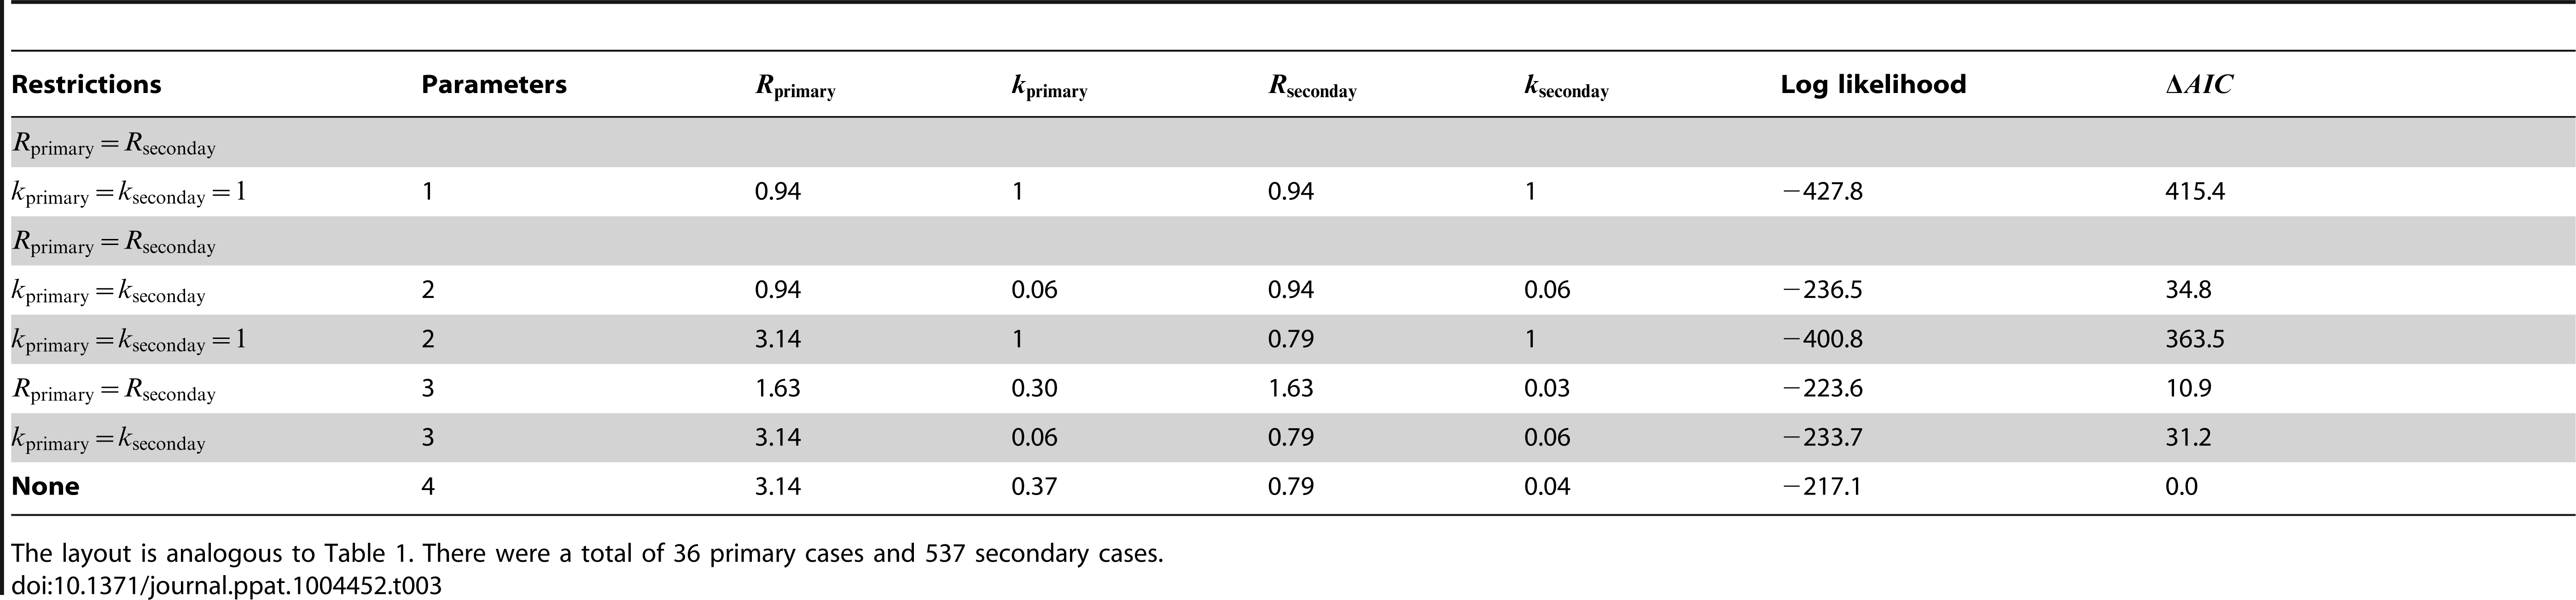 Inference results for comparing the transmissibility of primary and secondary cases for smallpox in Europe, 1958–1973.